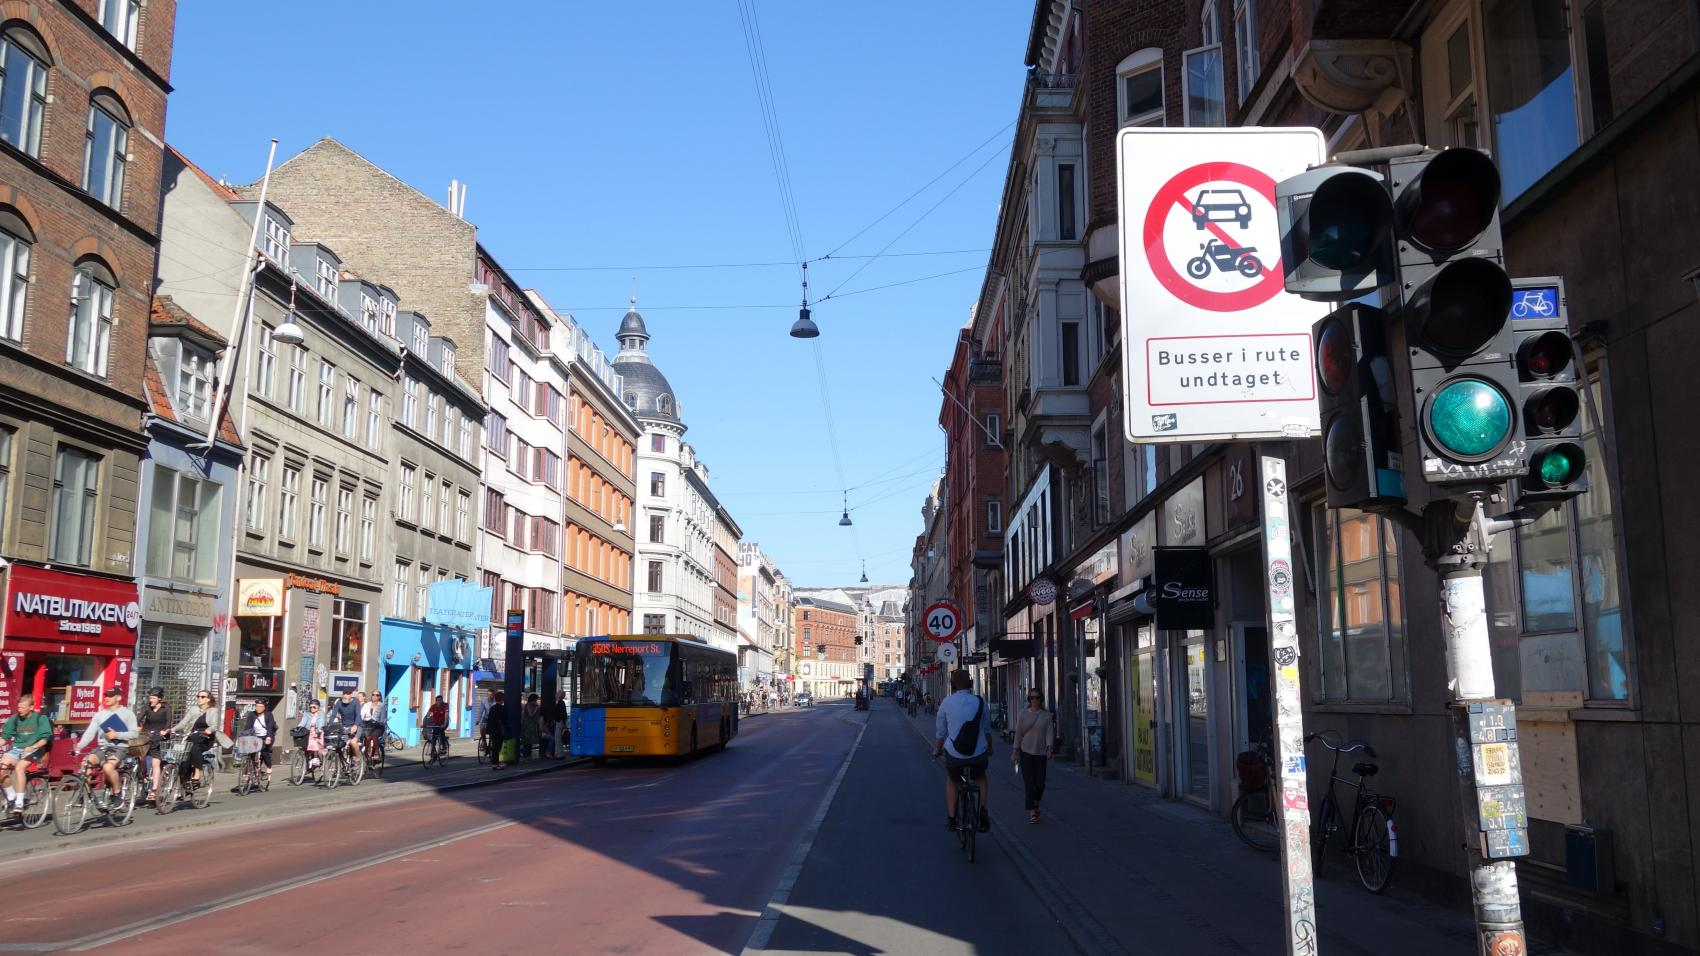 One of the sections of Nørrebrogade closed to motorised traffic. Only bicycles and busses are allowed through the next 100 m.